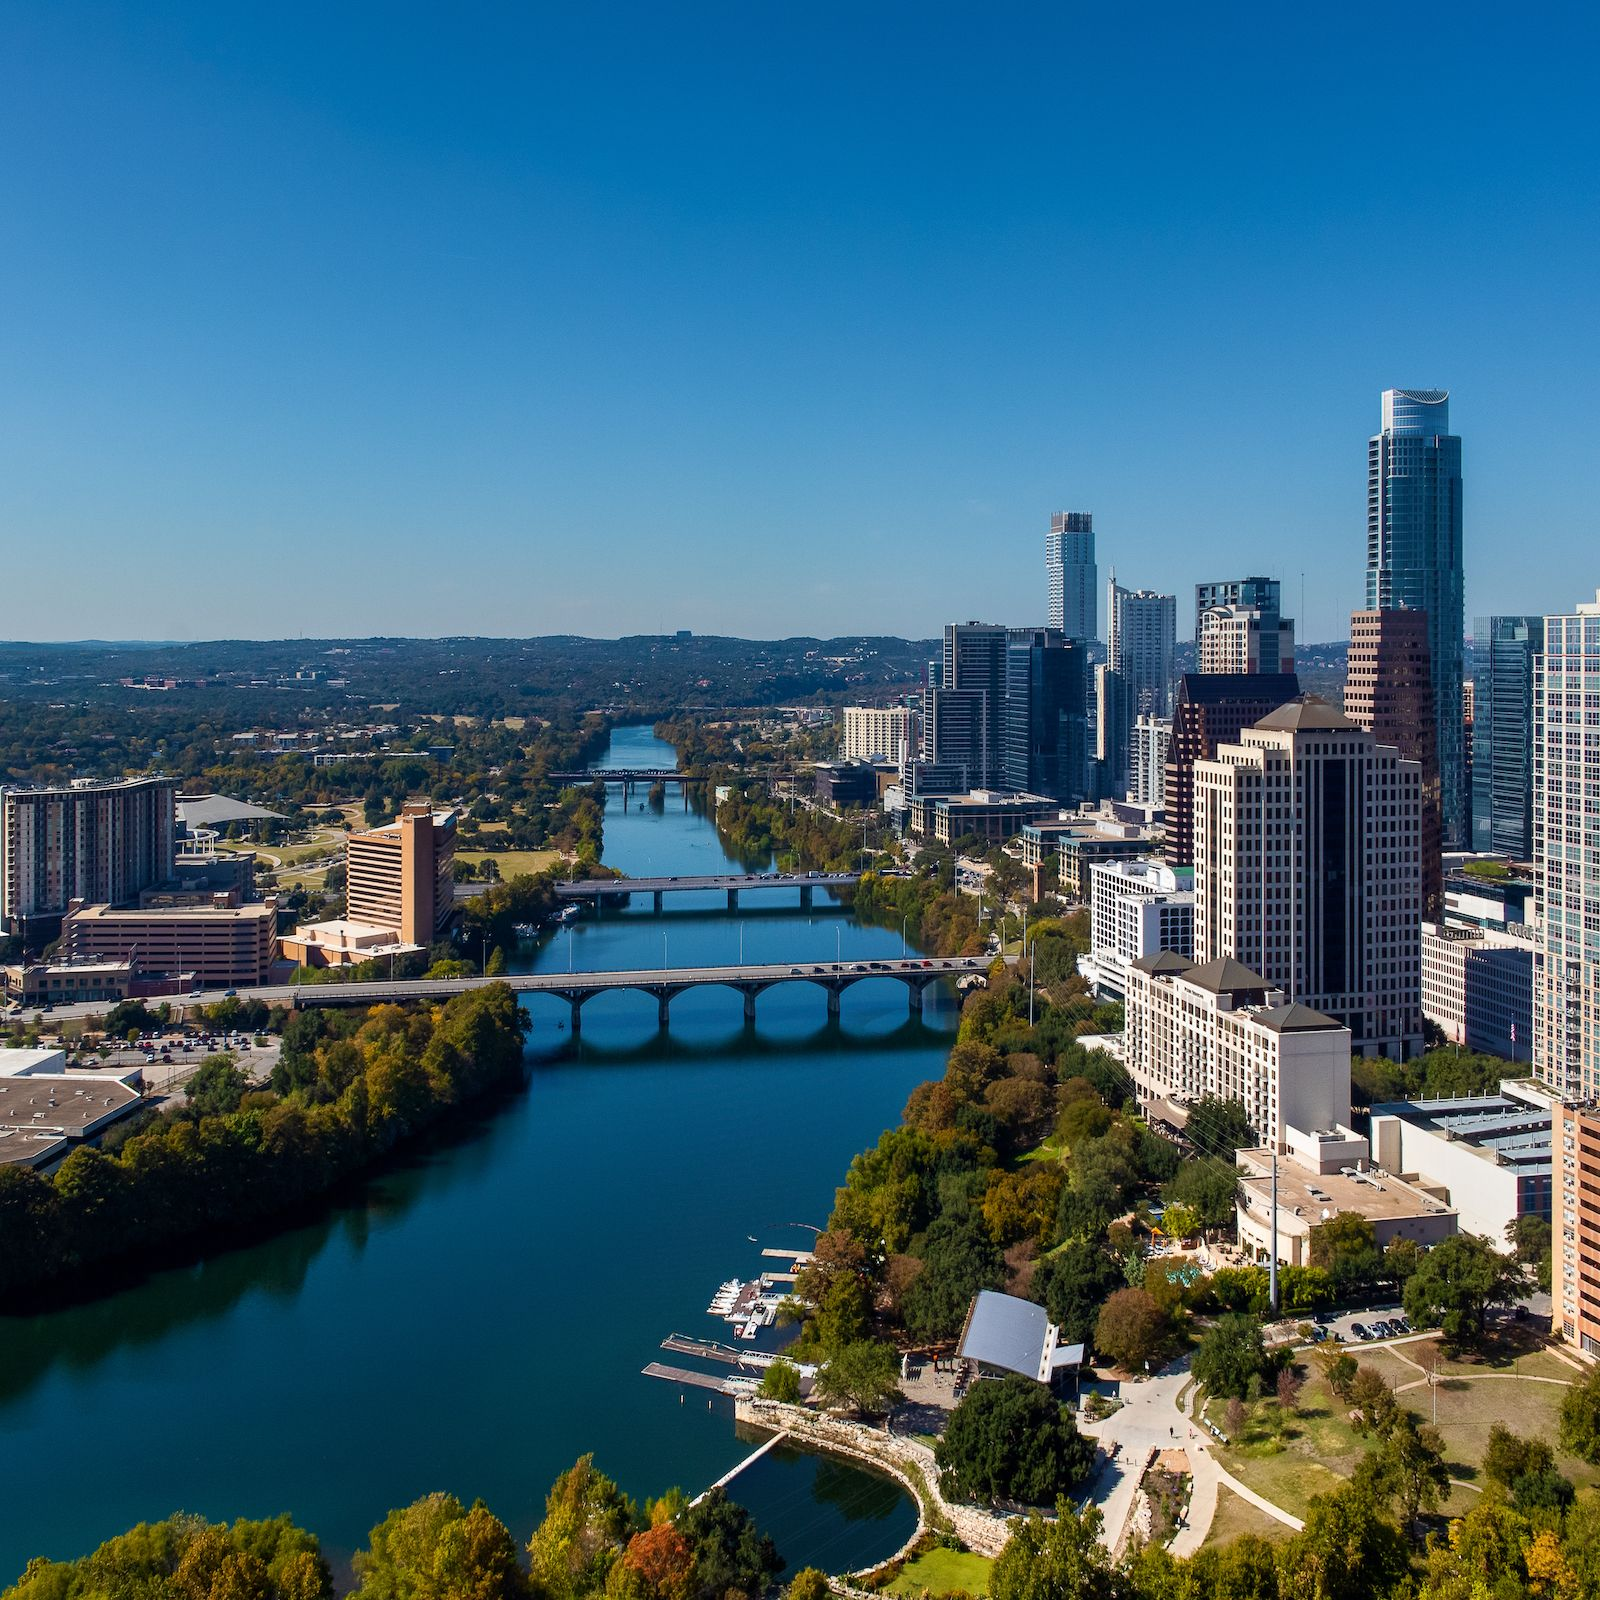 Birds-eye view of downtown Austin, TX from the perspective of 70 Rainey's luxury condos